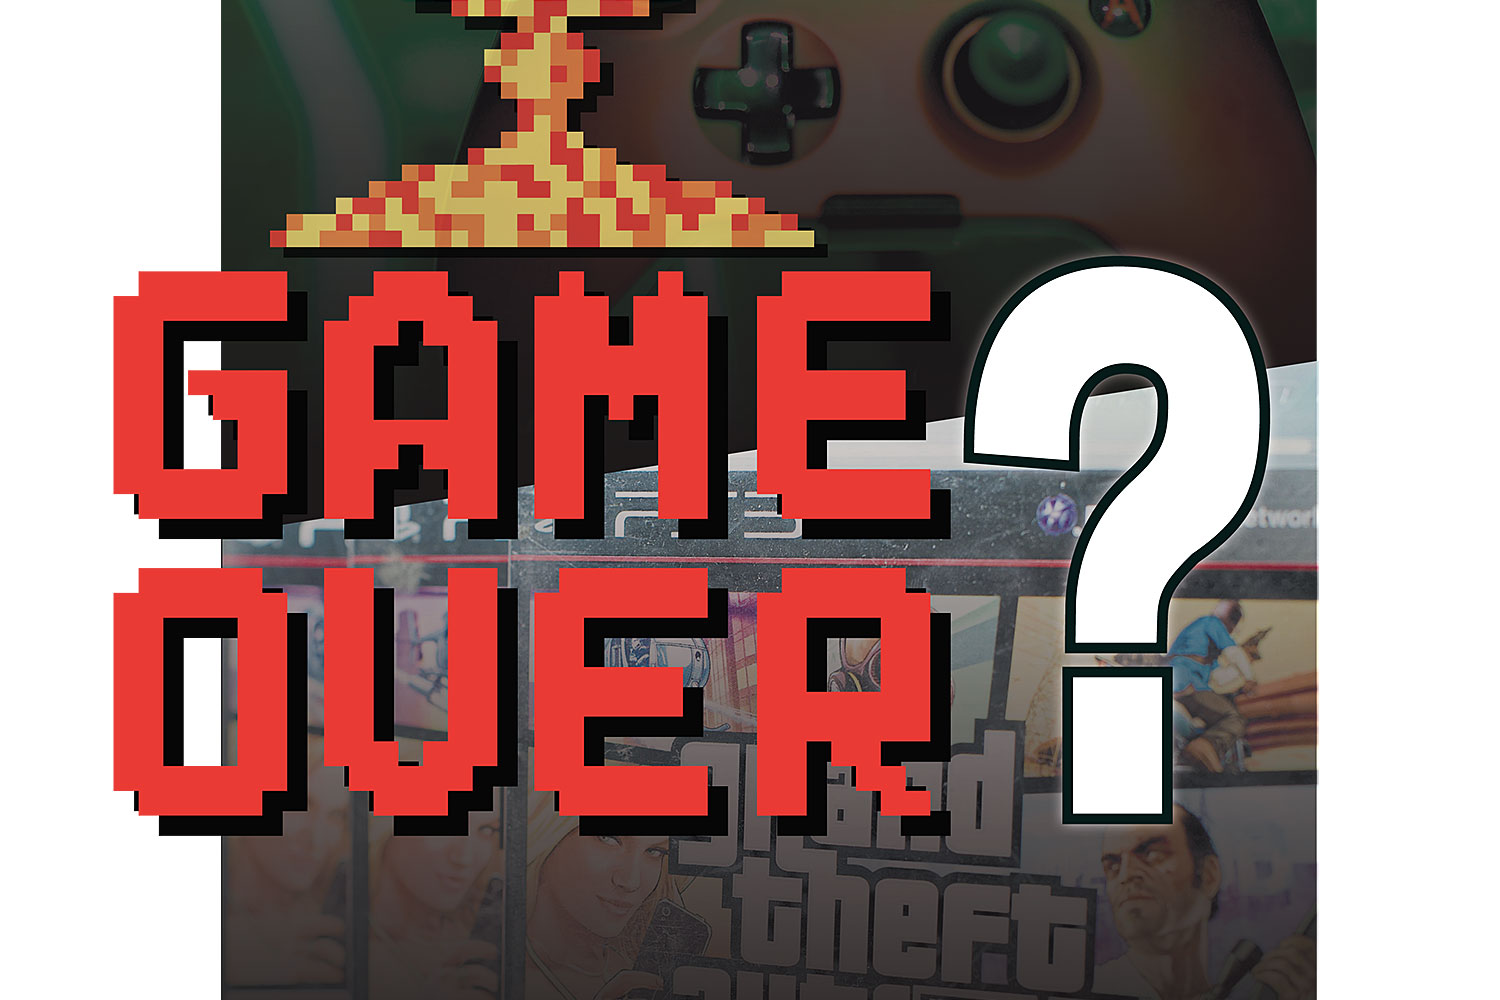 Game over?